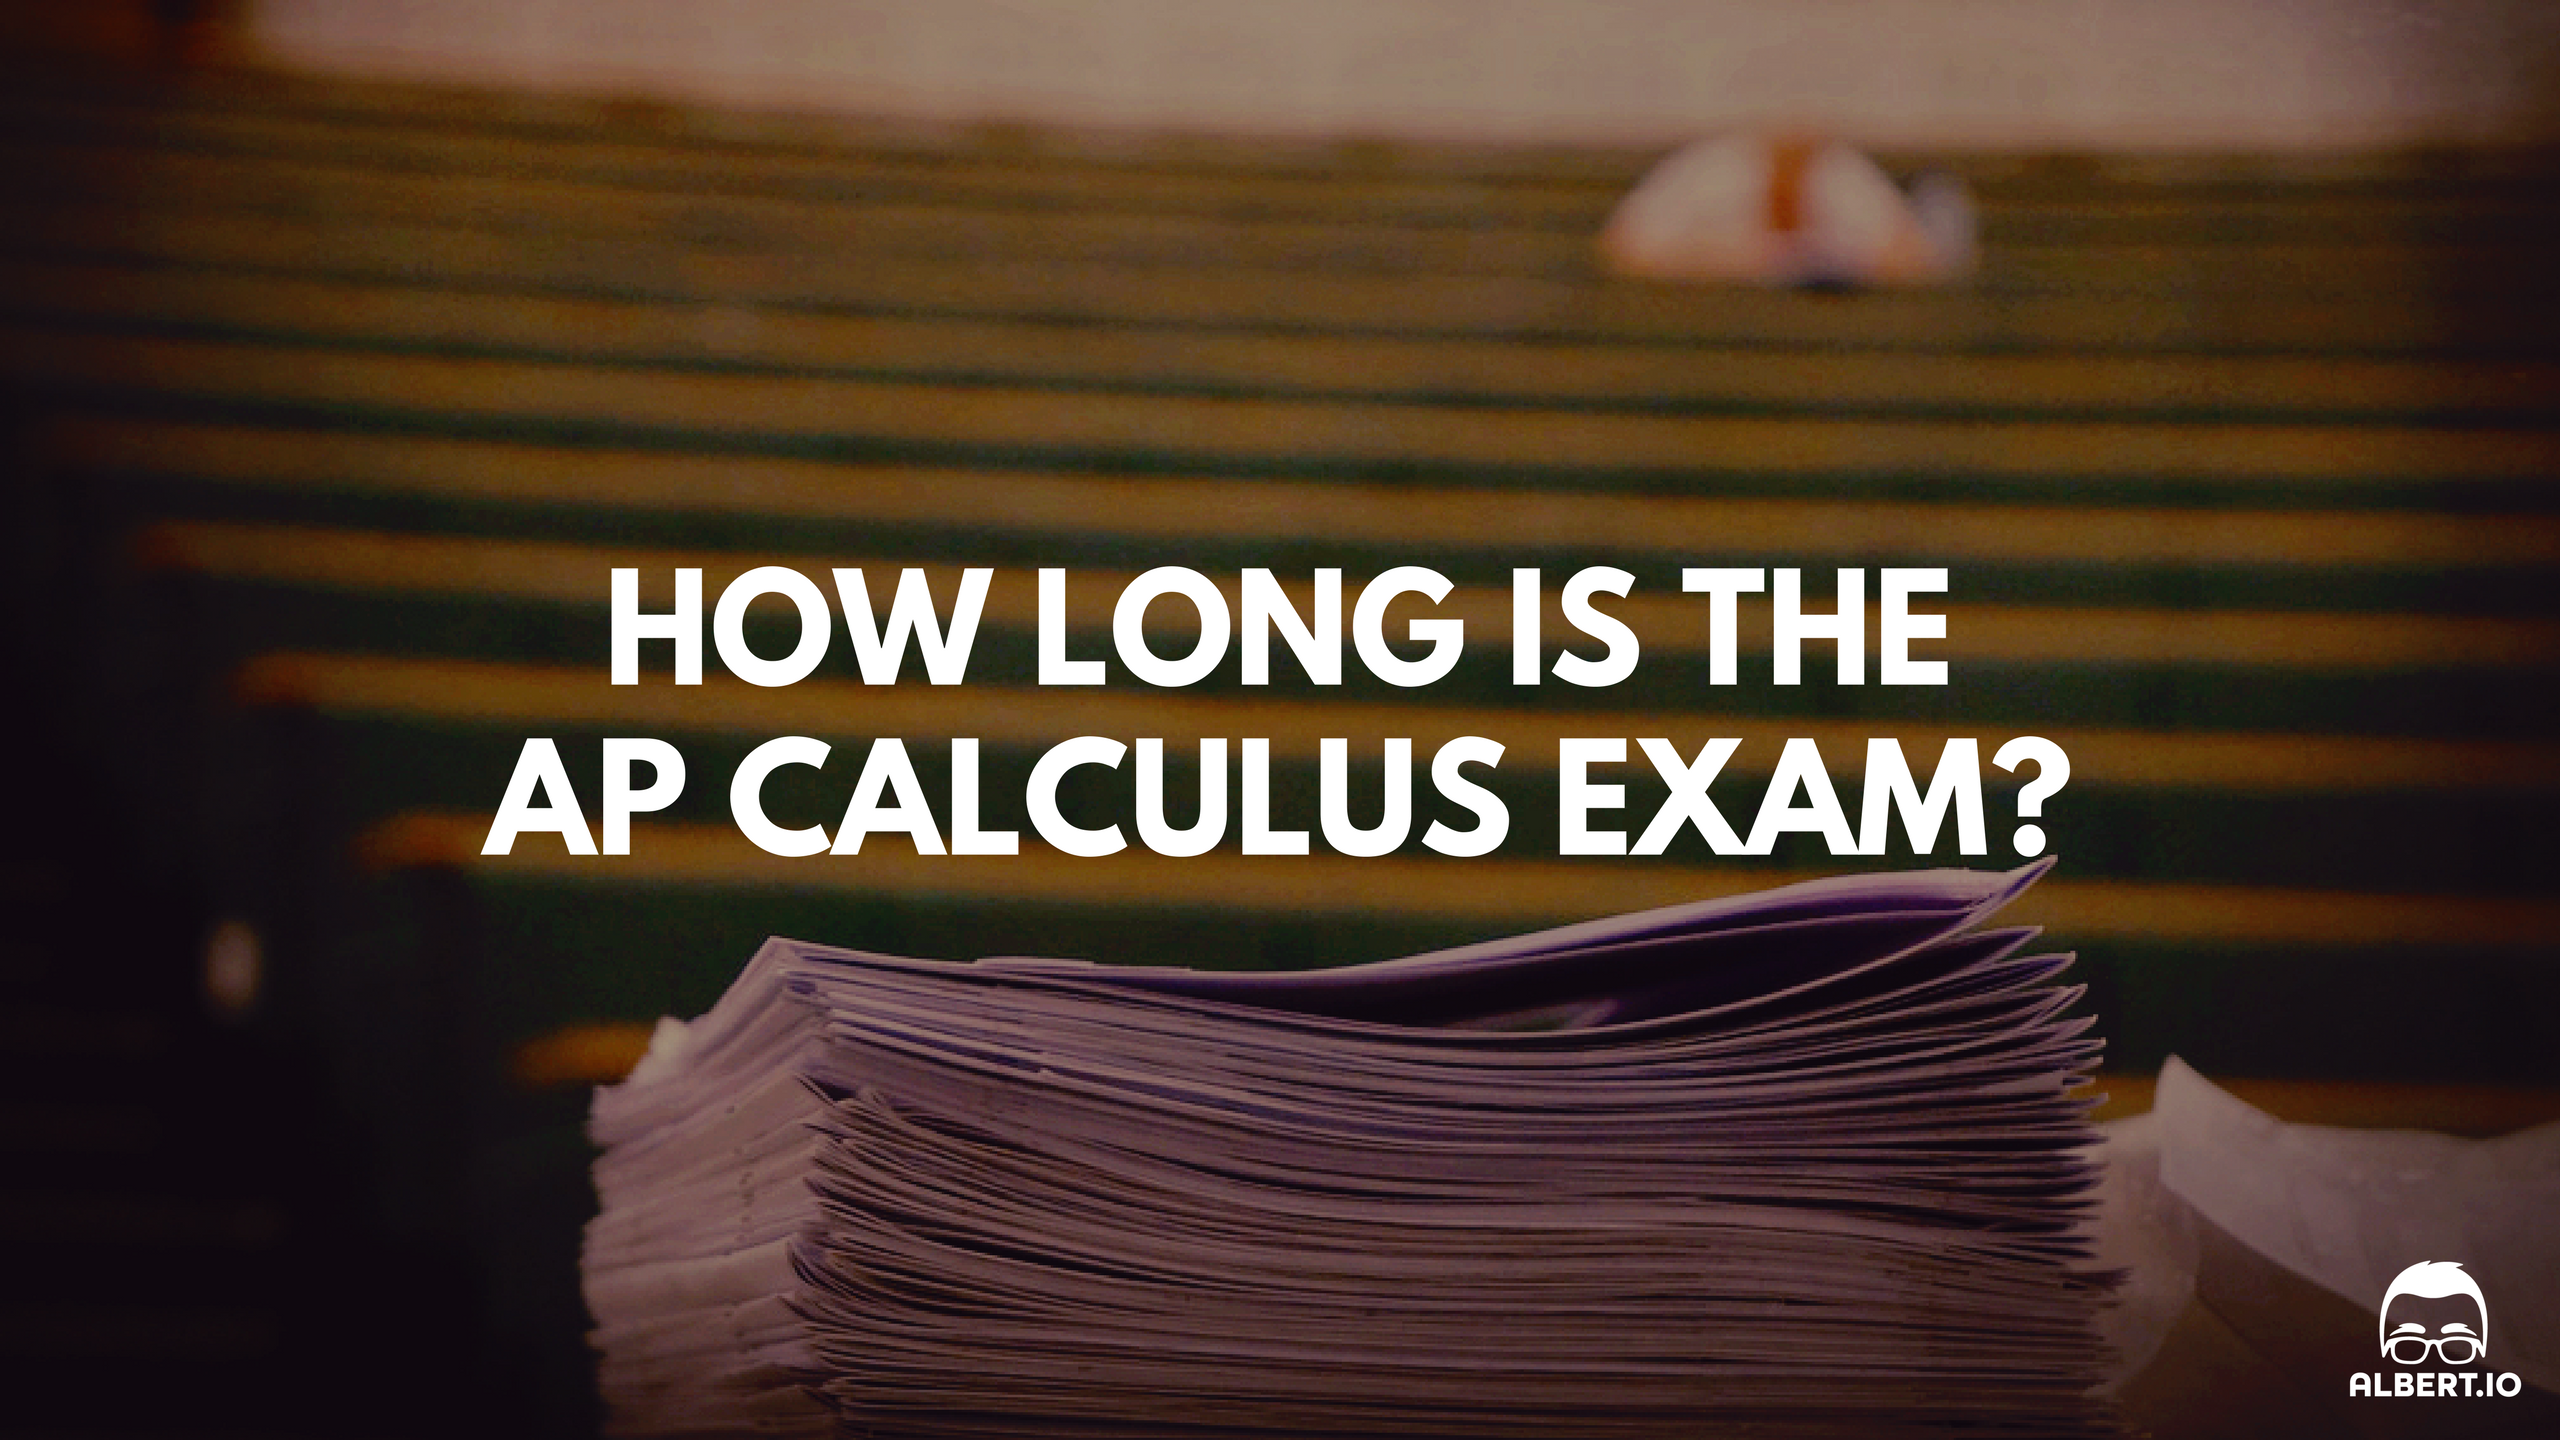 How Long is the AP Calculus Exam